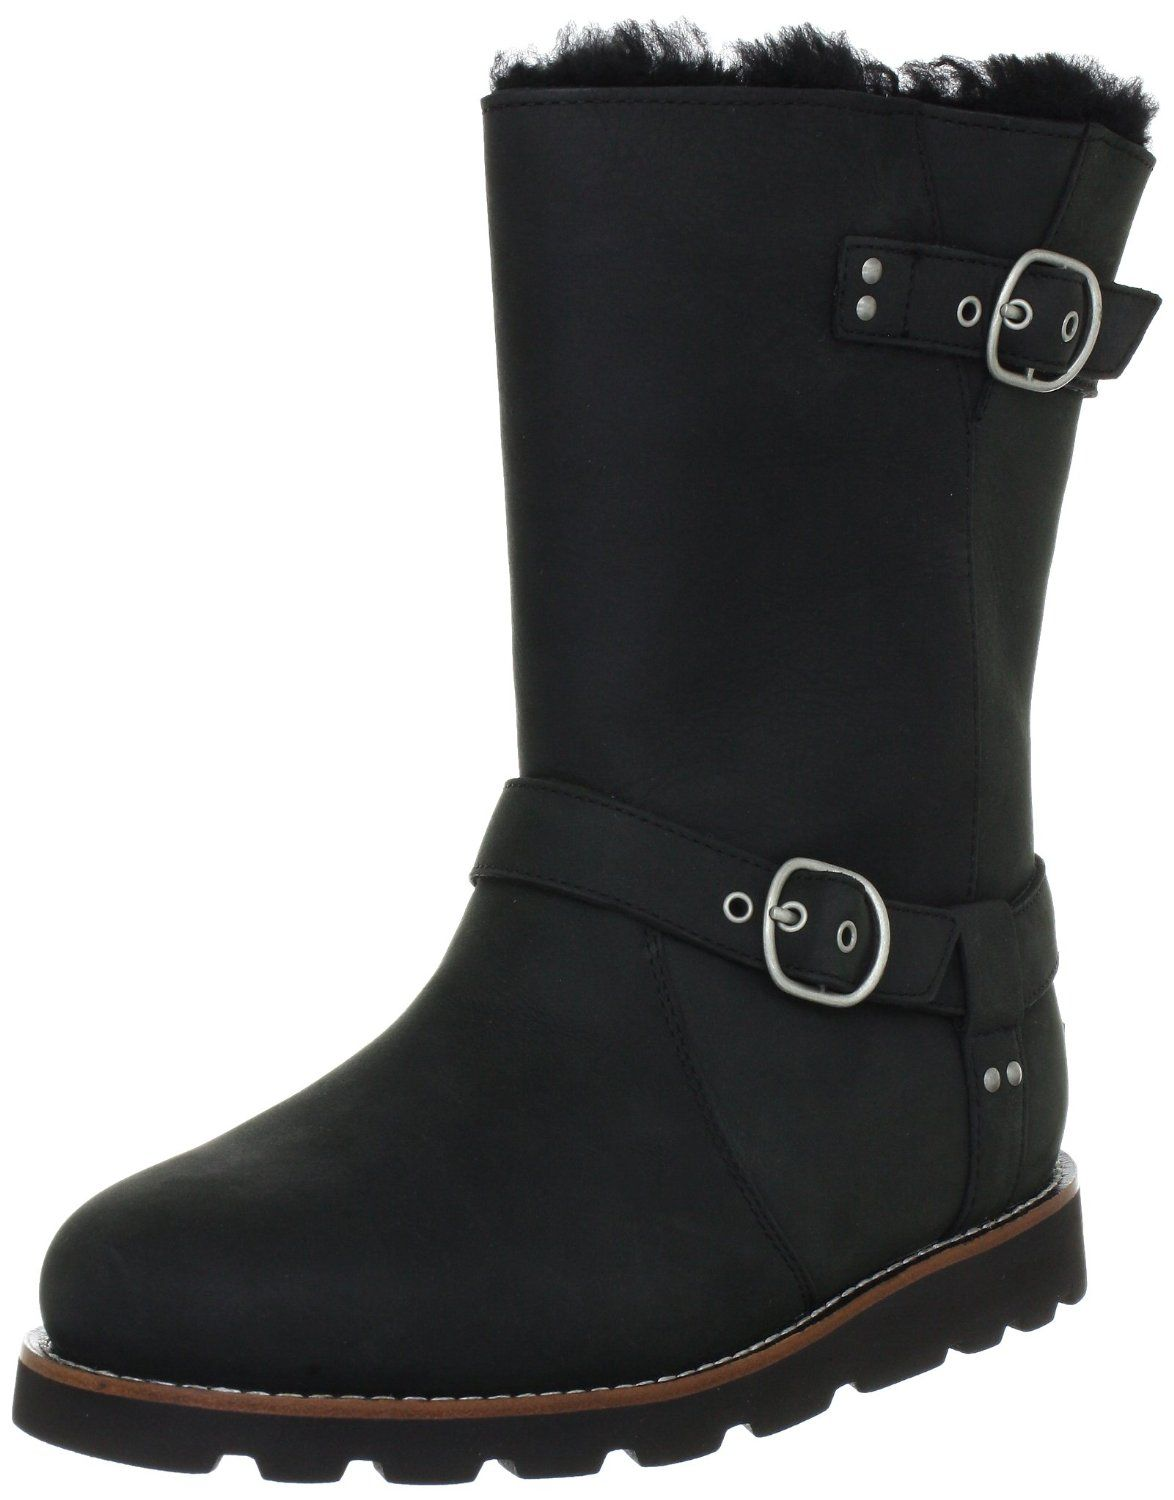 25a567eb3f UGG Noira Boot Women's- I LOVE UGG Boots! Wear them all the time in the  fall and winter.